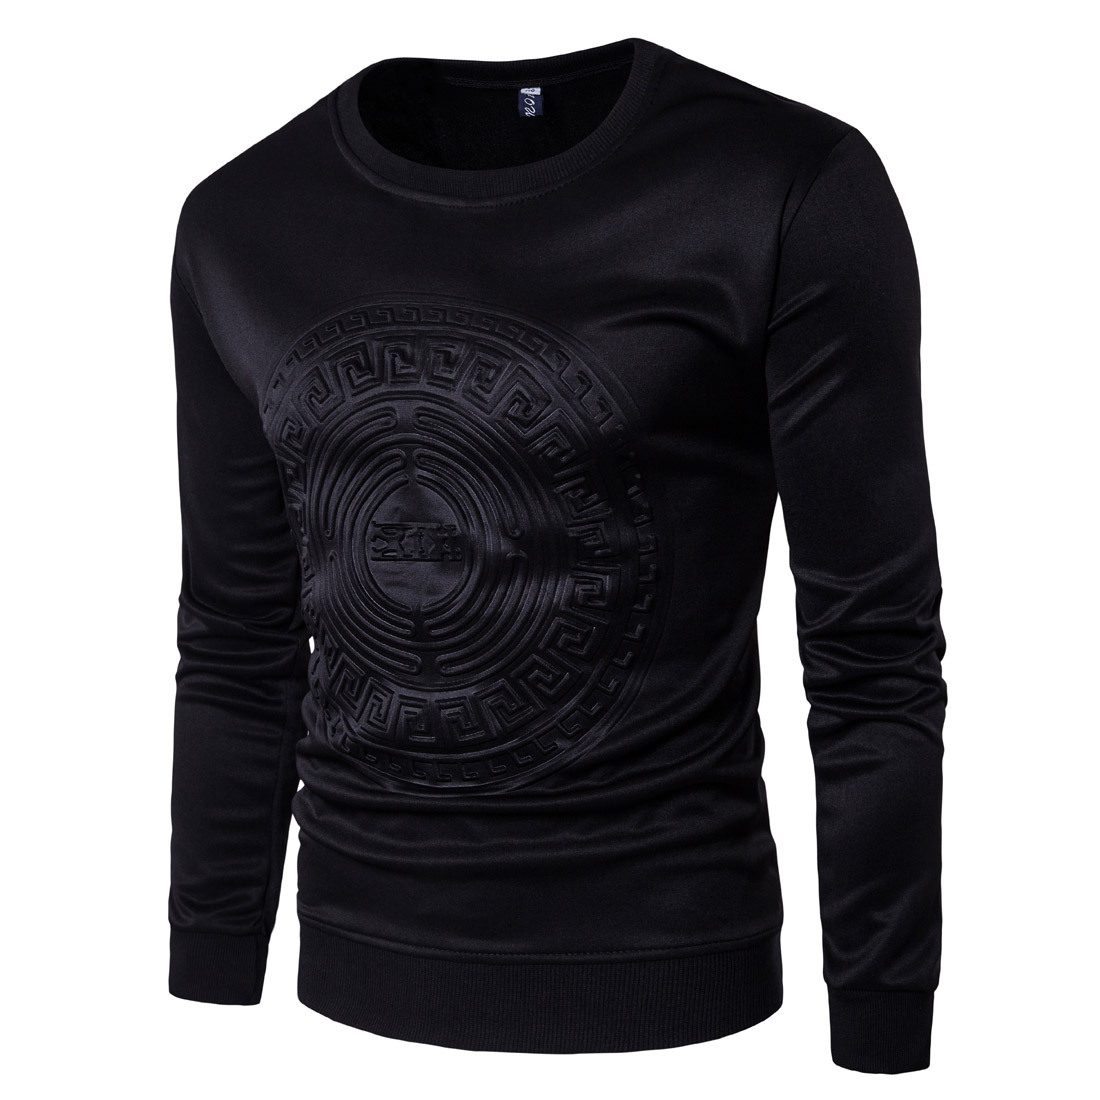 European Style Trend Personalized <font><b>Men's</b></font> Embossed Sweaters Set Of Space Overseas Fashion Long-sleeved <font><b>Shirts</b></font> XS-3XL image